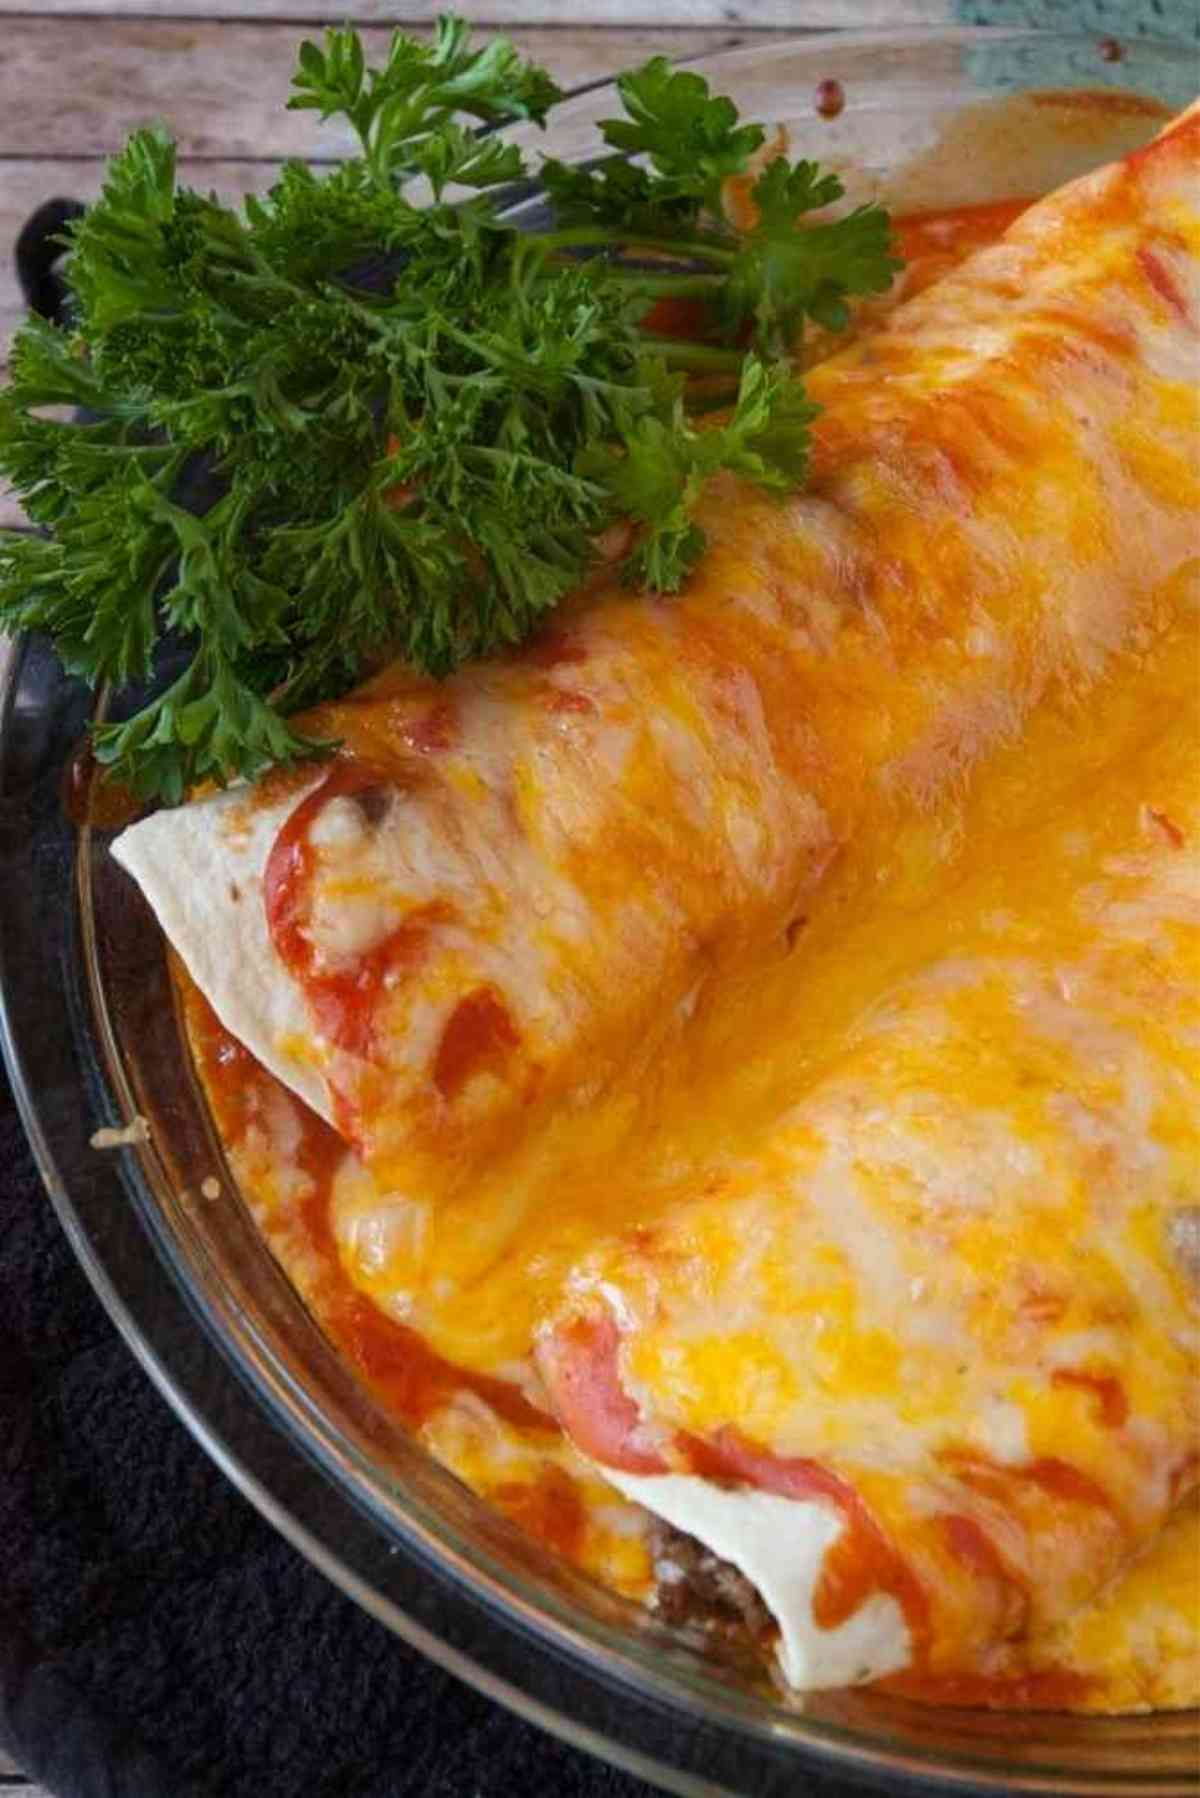 A plate of two ground beef enchiladas.